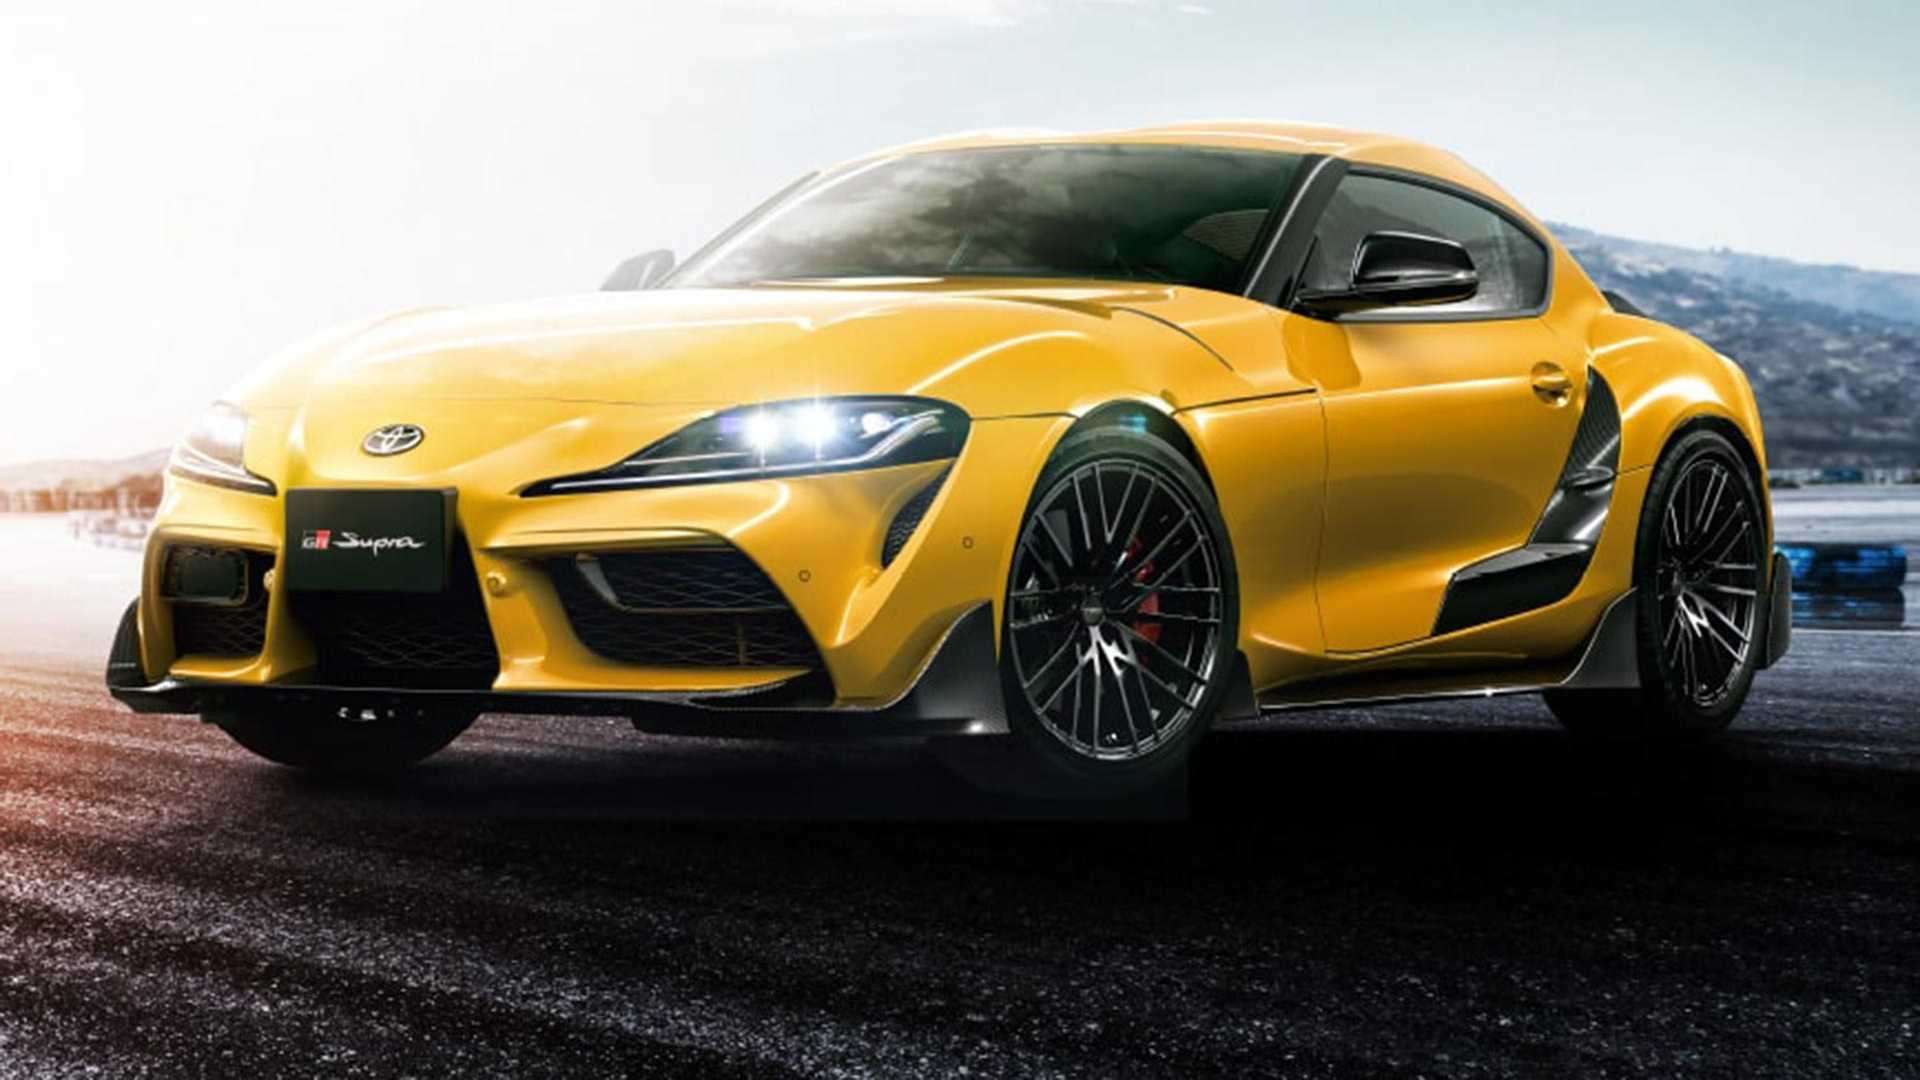 The Toyota Supra coupe series returns to the Japanese automobile market as the A90 after a 17-year-long hiatus